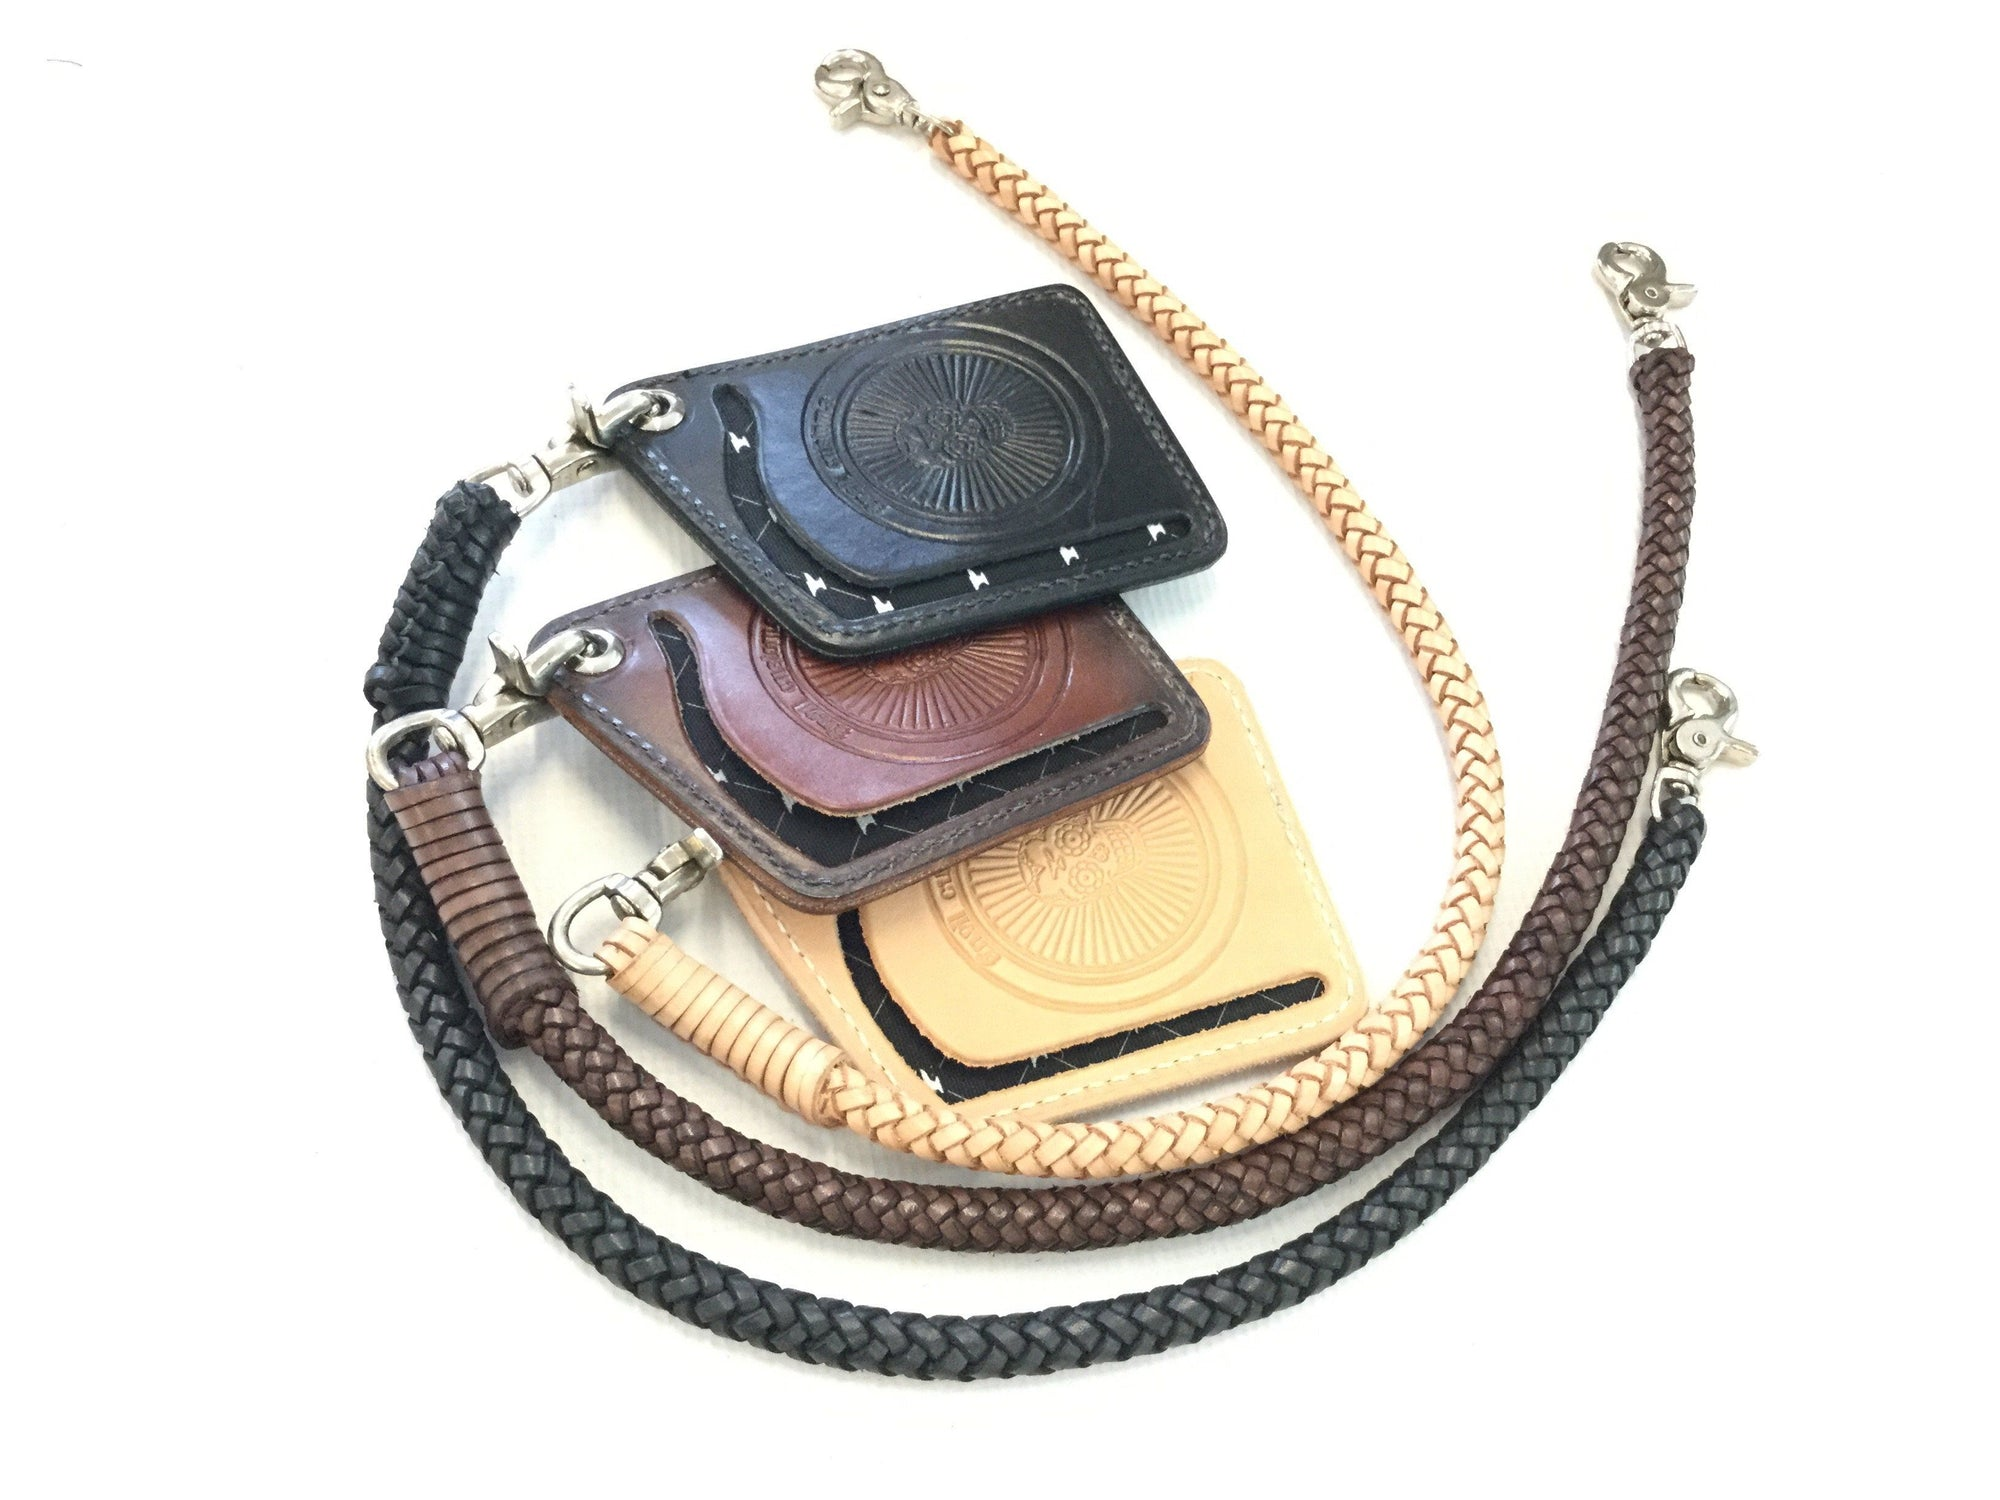 Braided Leather Wallet Chain - Anvil Customs